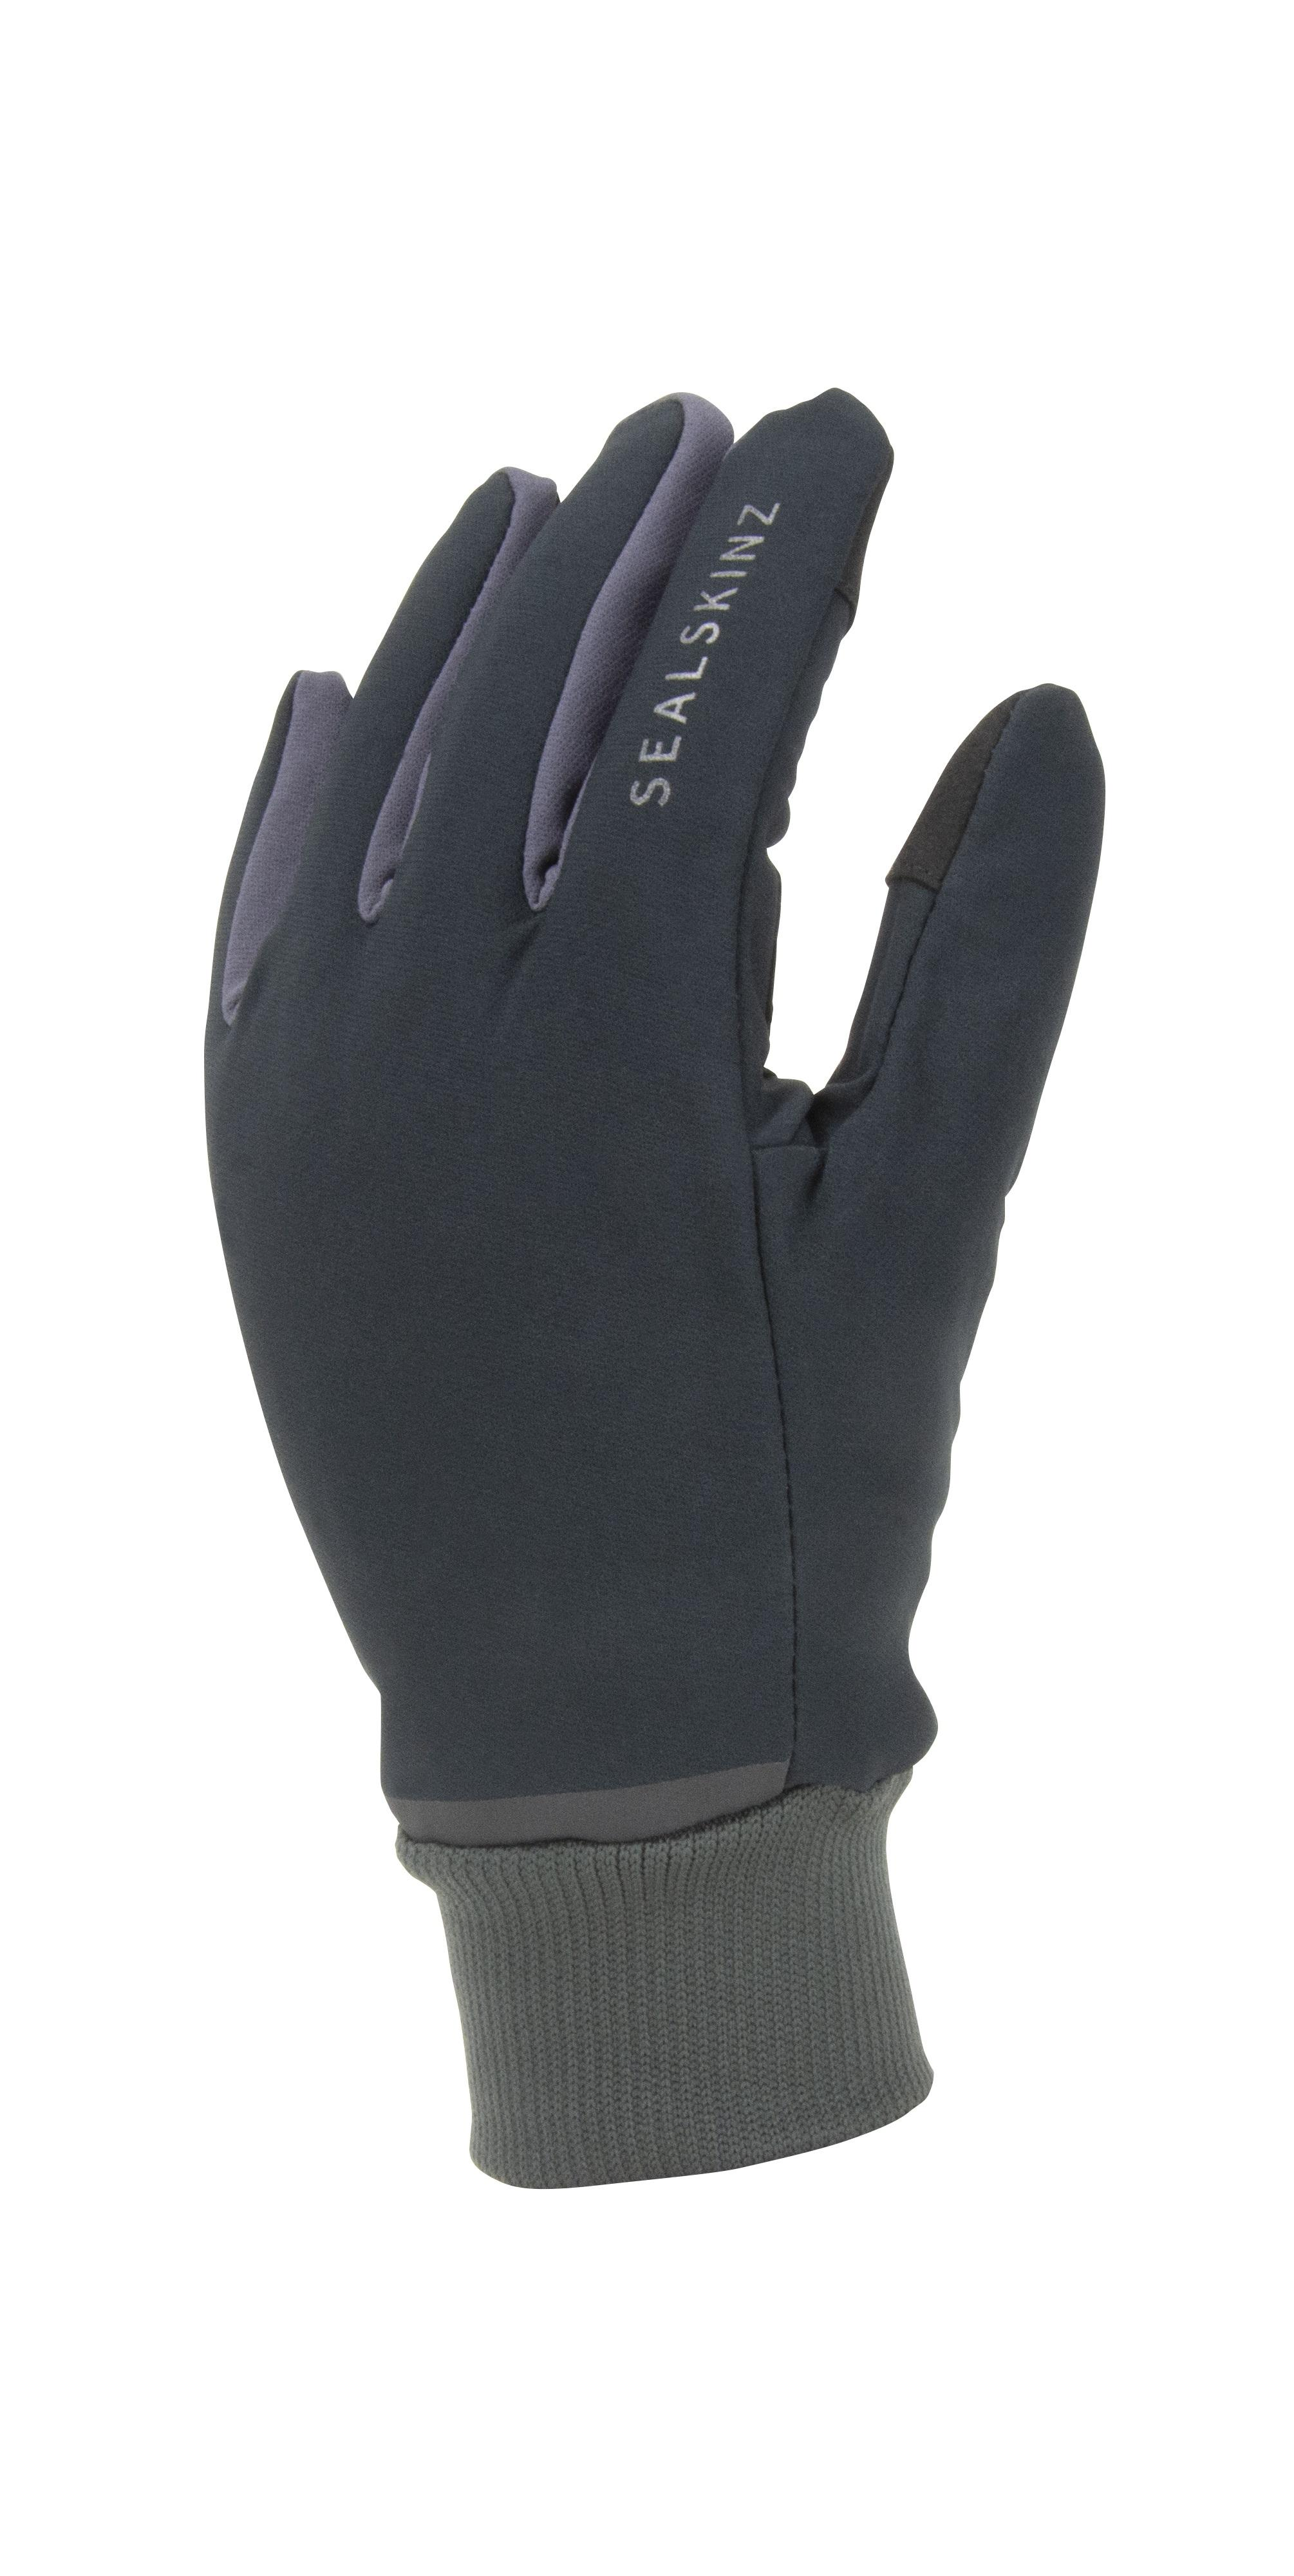 Sealskinz Fietshandschoenen Waterdicht Unisex Zwart Grijs - Waterproof All Weather Lightweight Glove with Fusion Control Black Grey